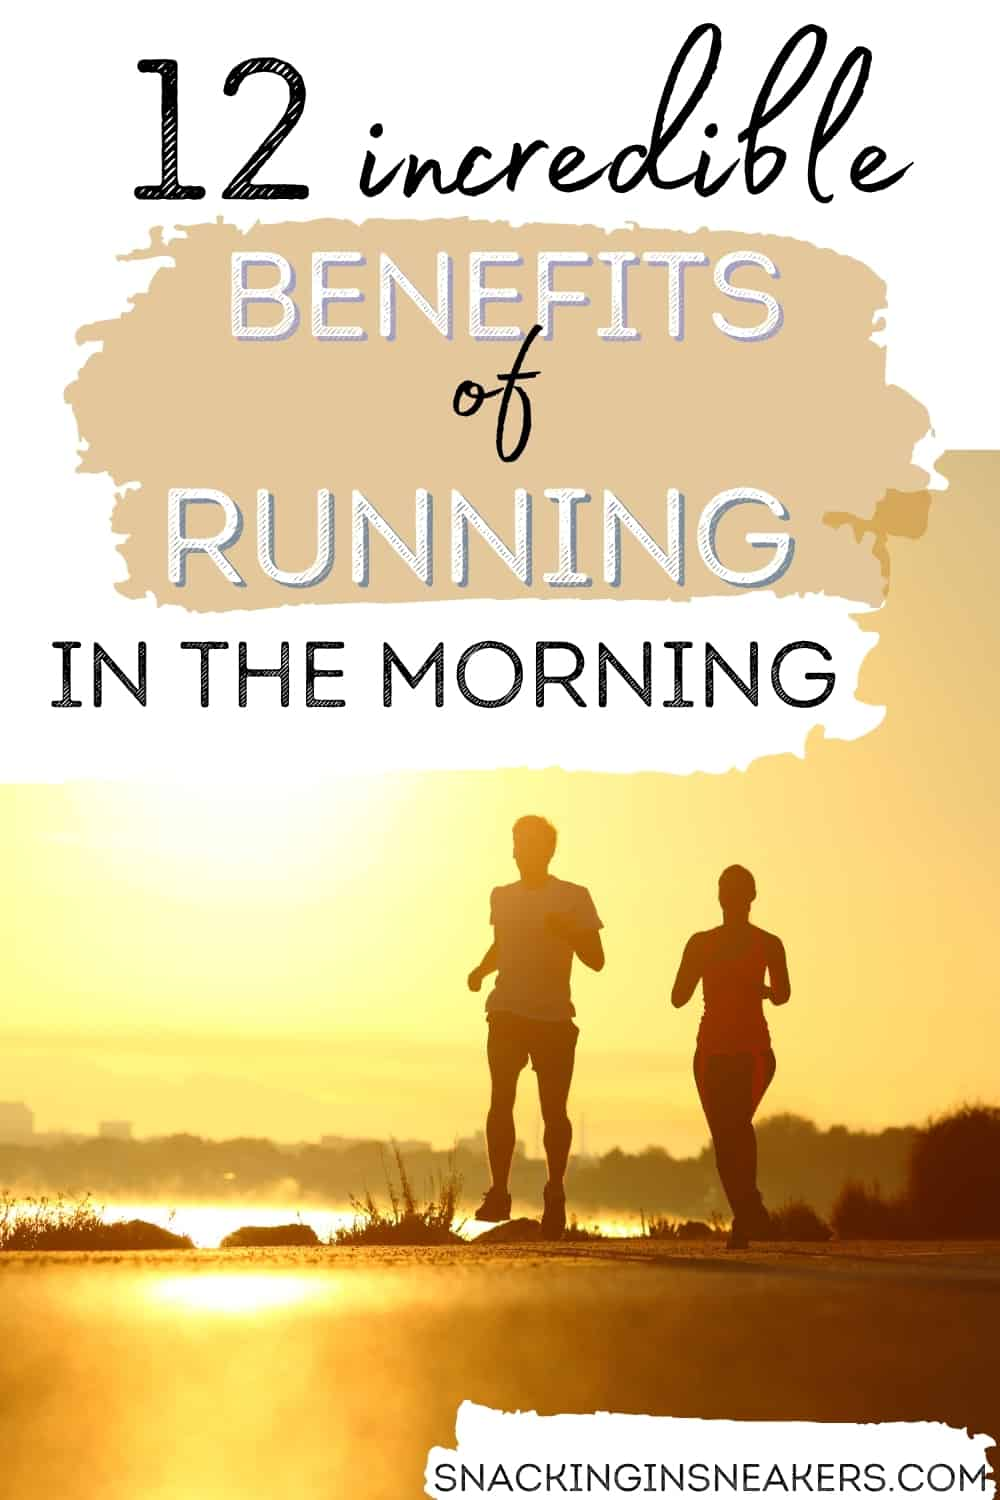 A couple running outside at sunrise, with a text overlay that says